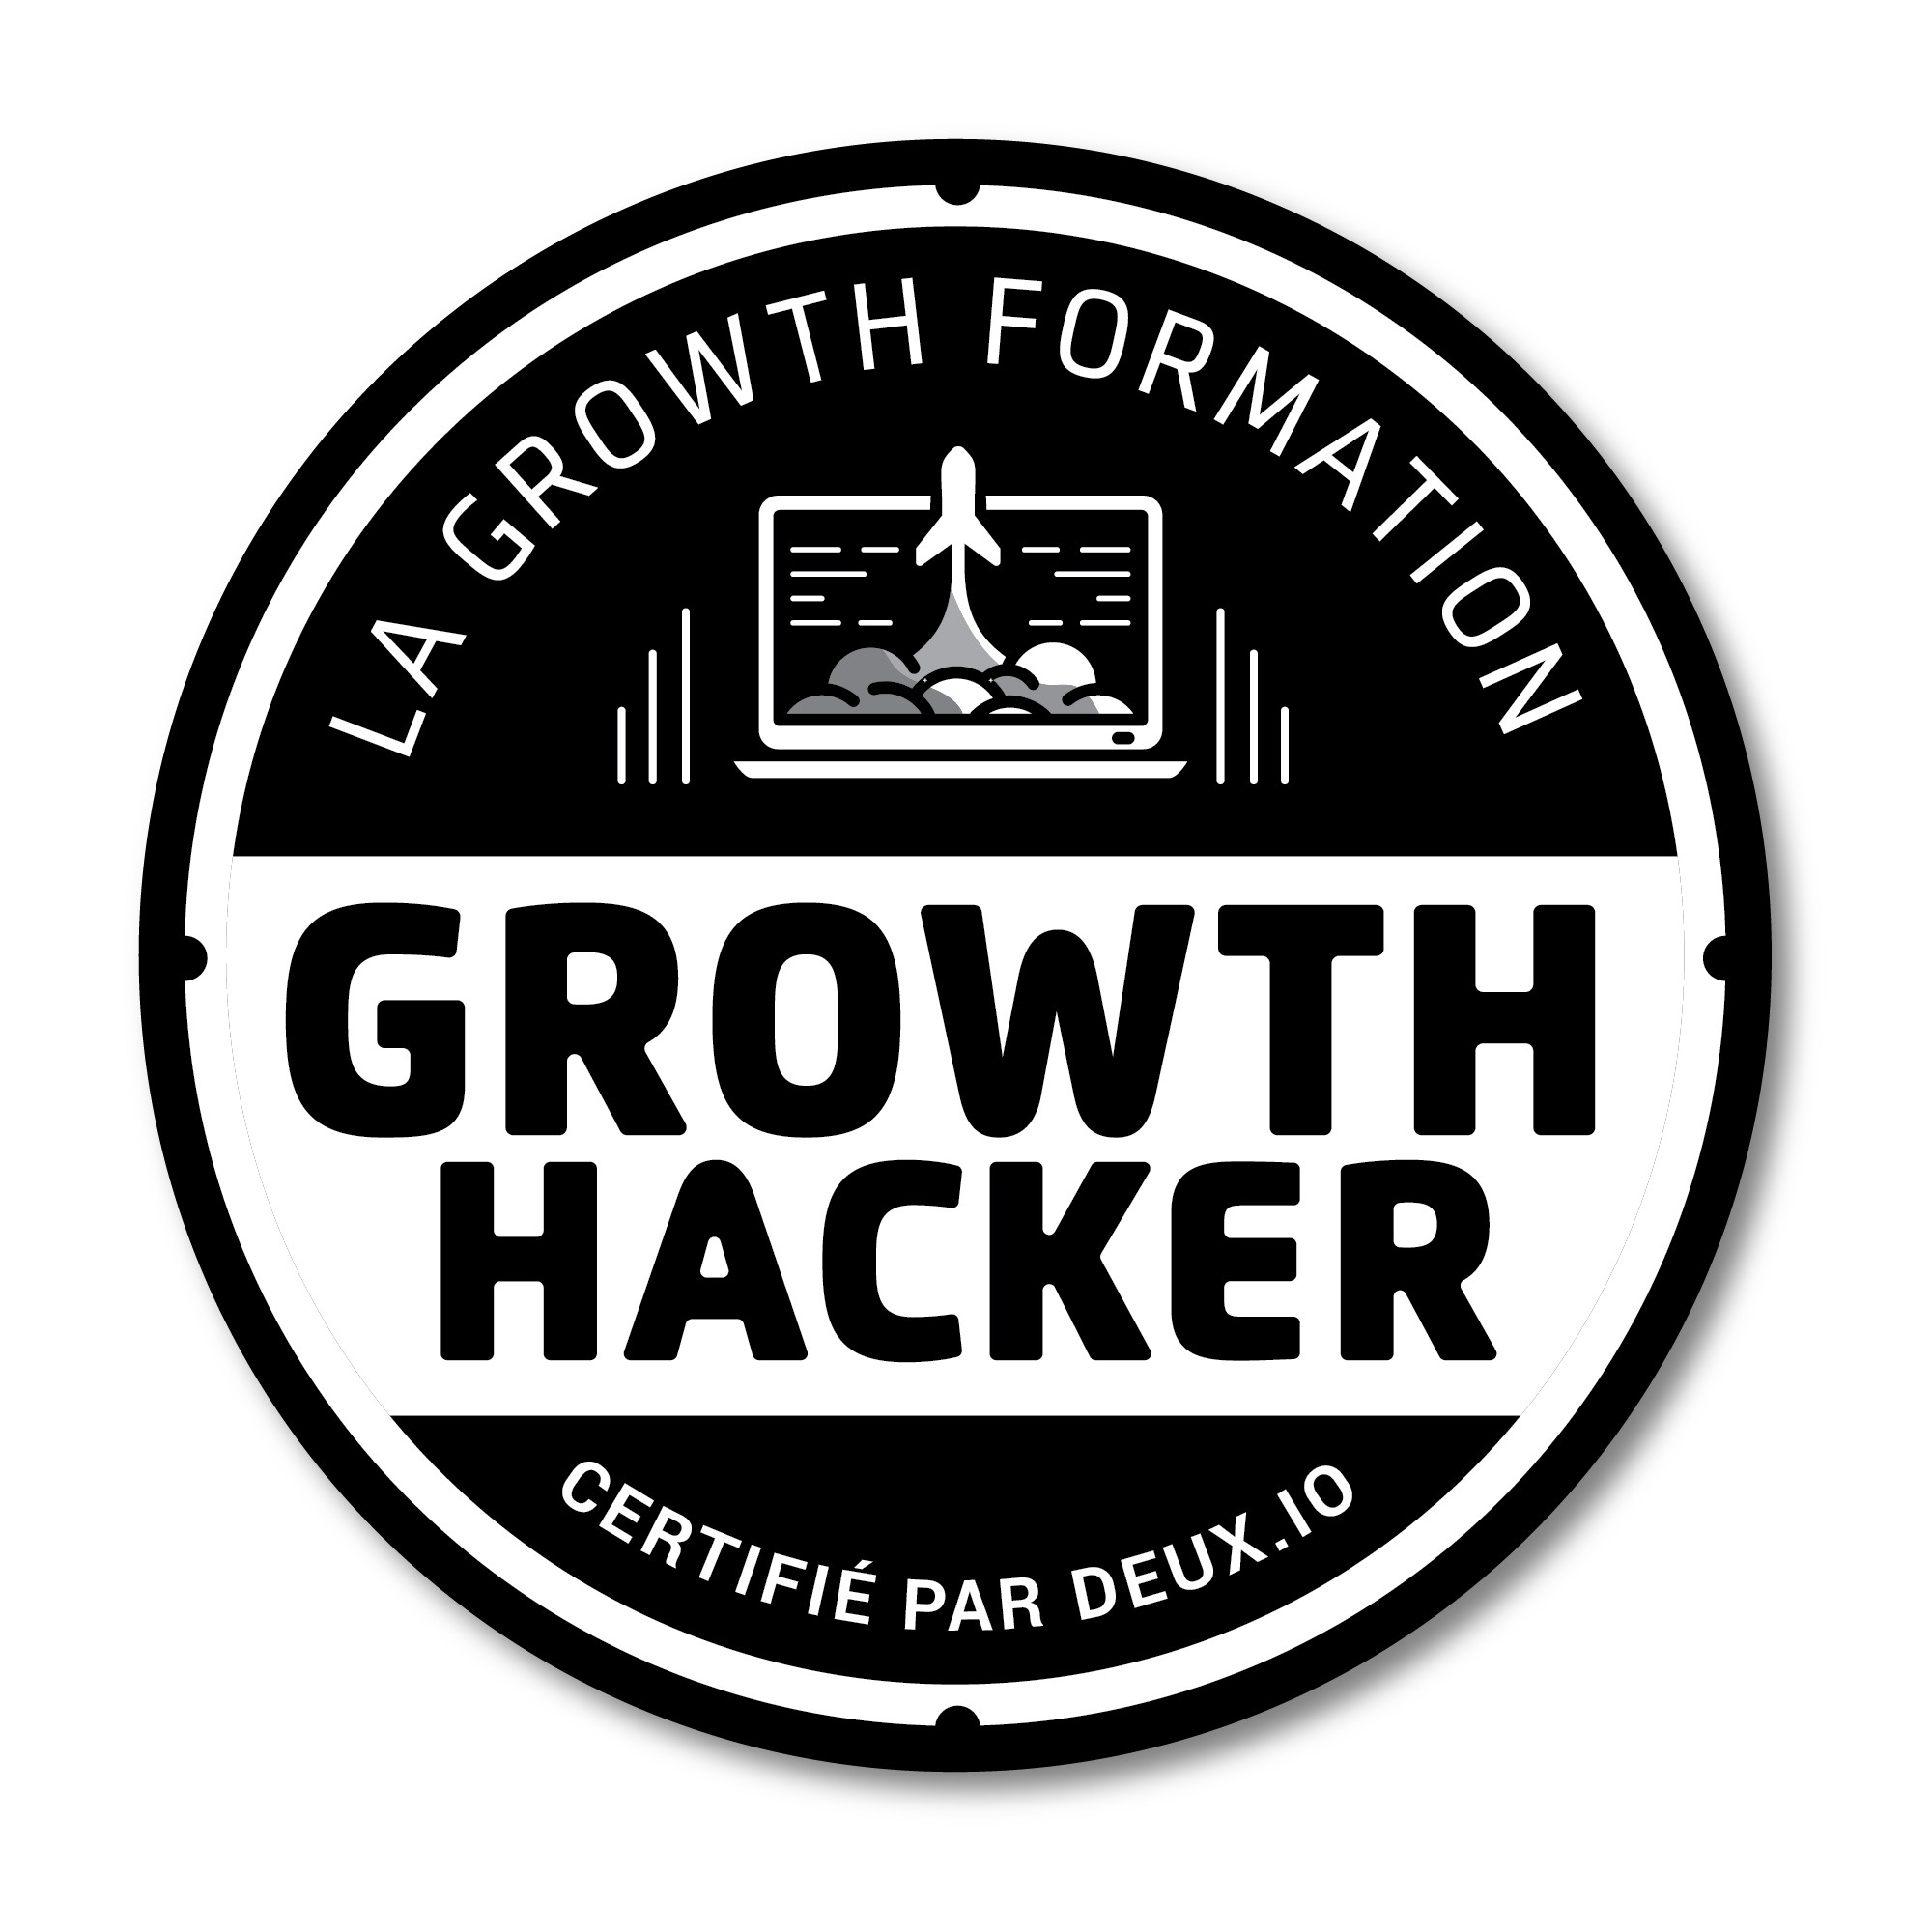 Our Growth Hacking Training needs a Remarkable Sticker !